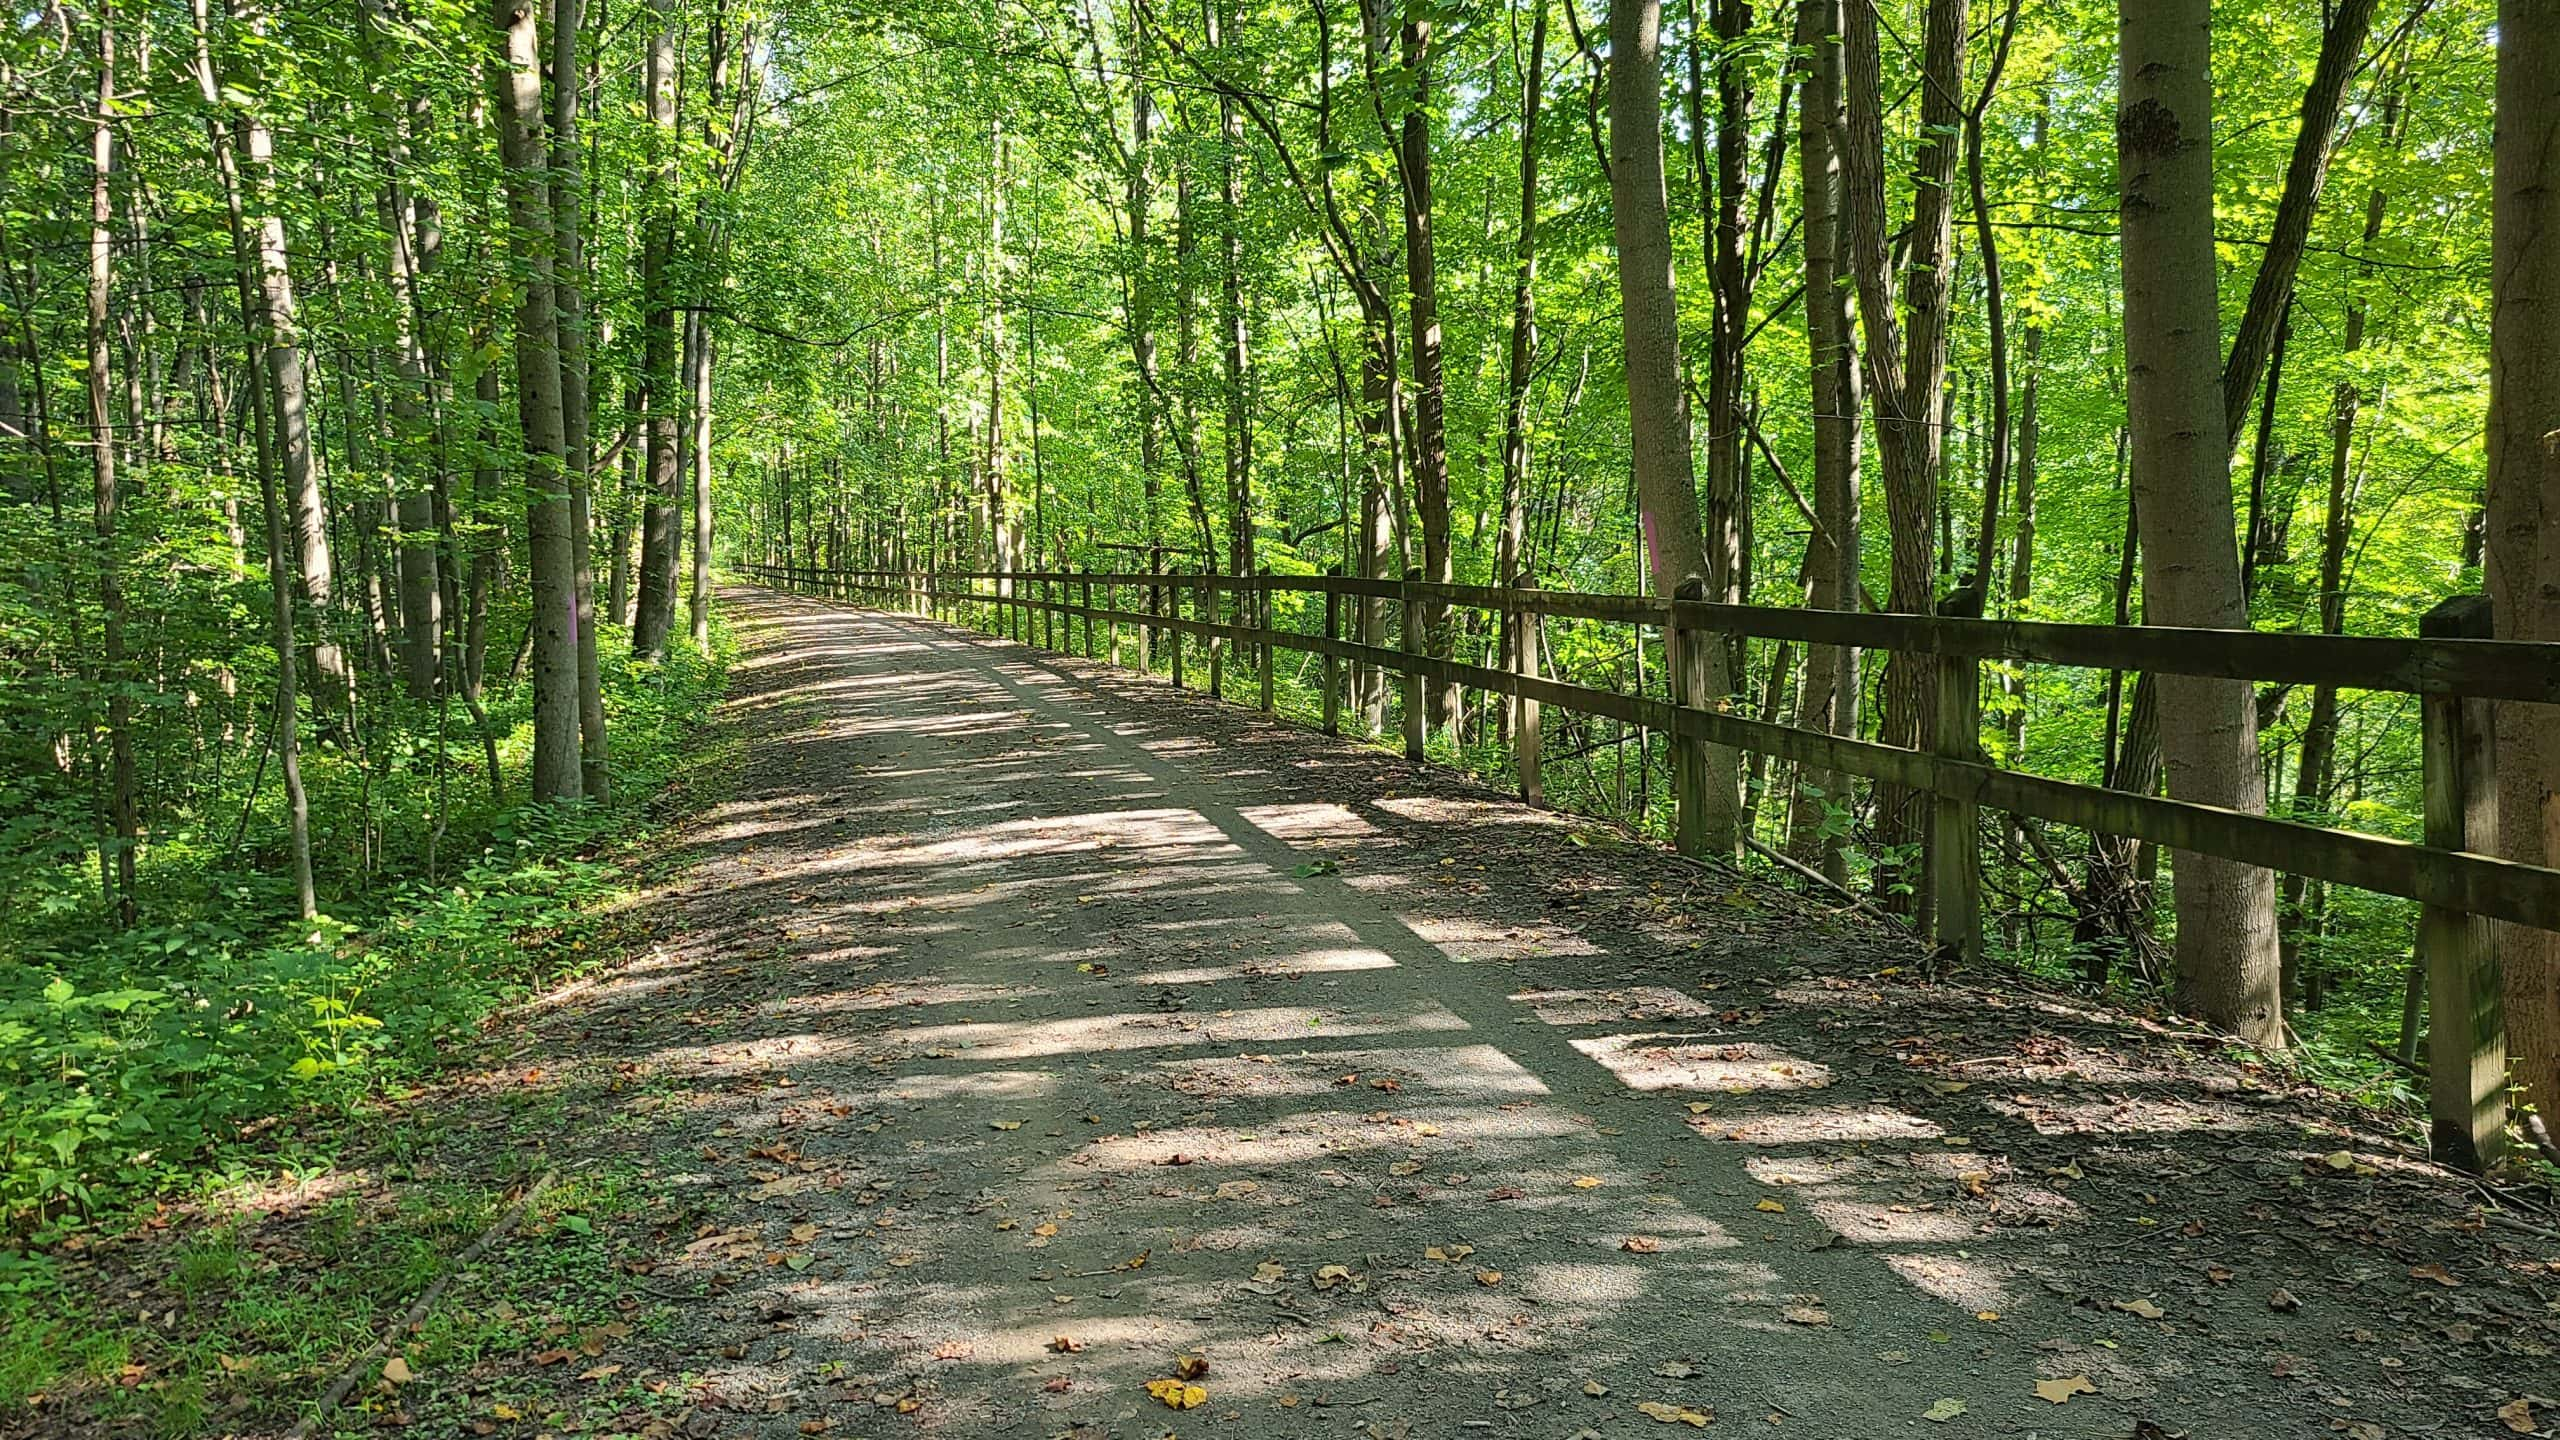 The trail bends to the left through a sunny forest. A wooden fence lines the right side of the trail.